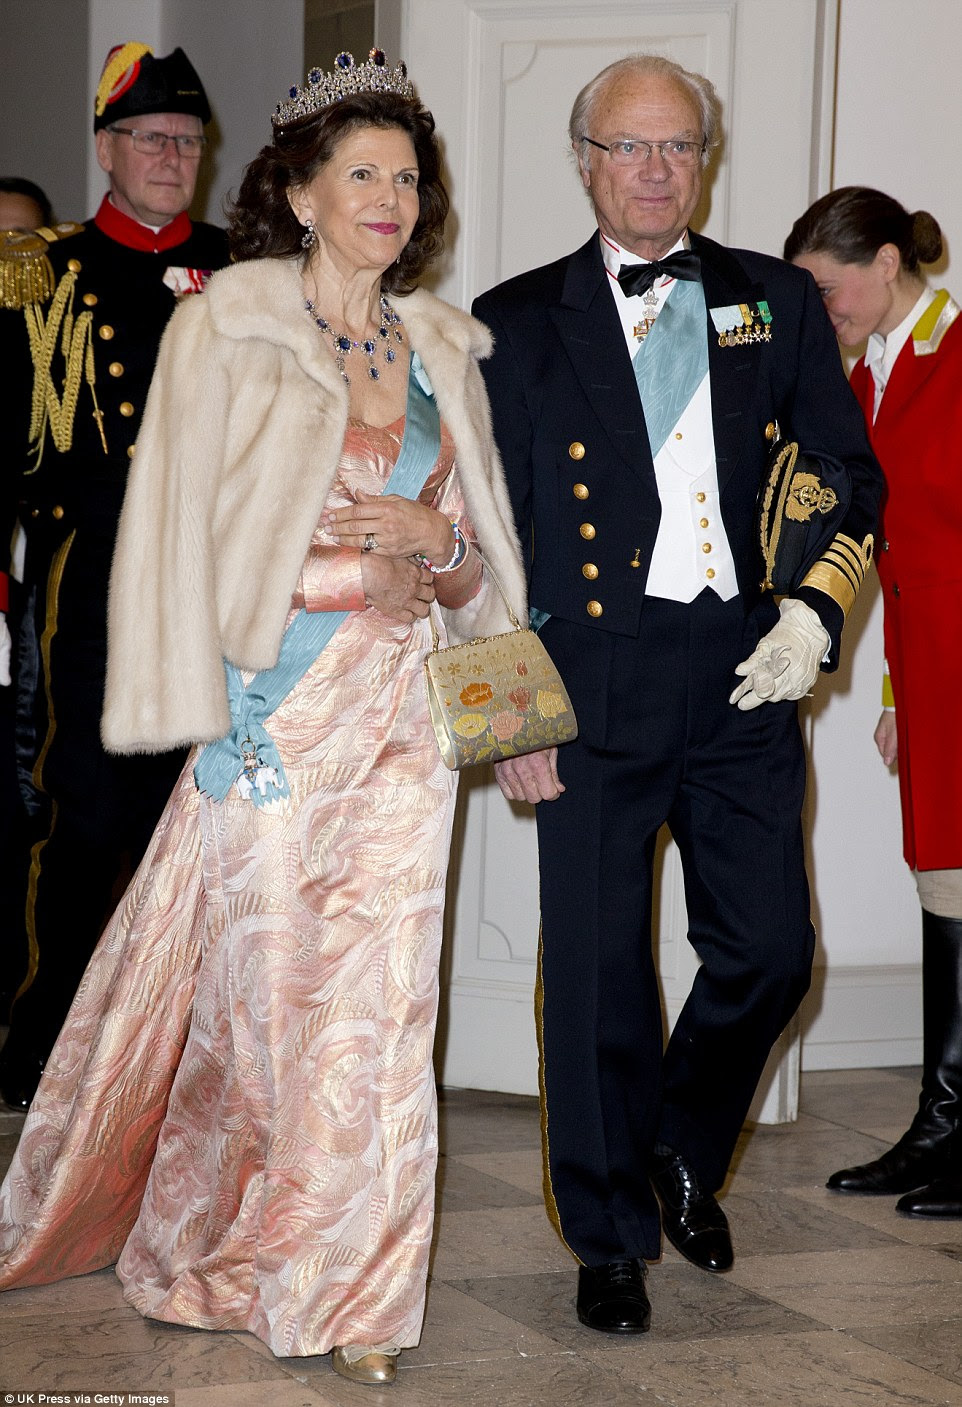 Looking good: Sweden's King Carl XVI Gustaf and his wife, Queen Silvia arrive for the gala dinner